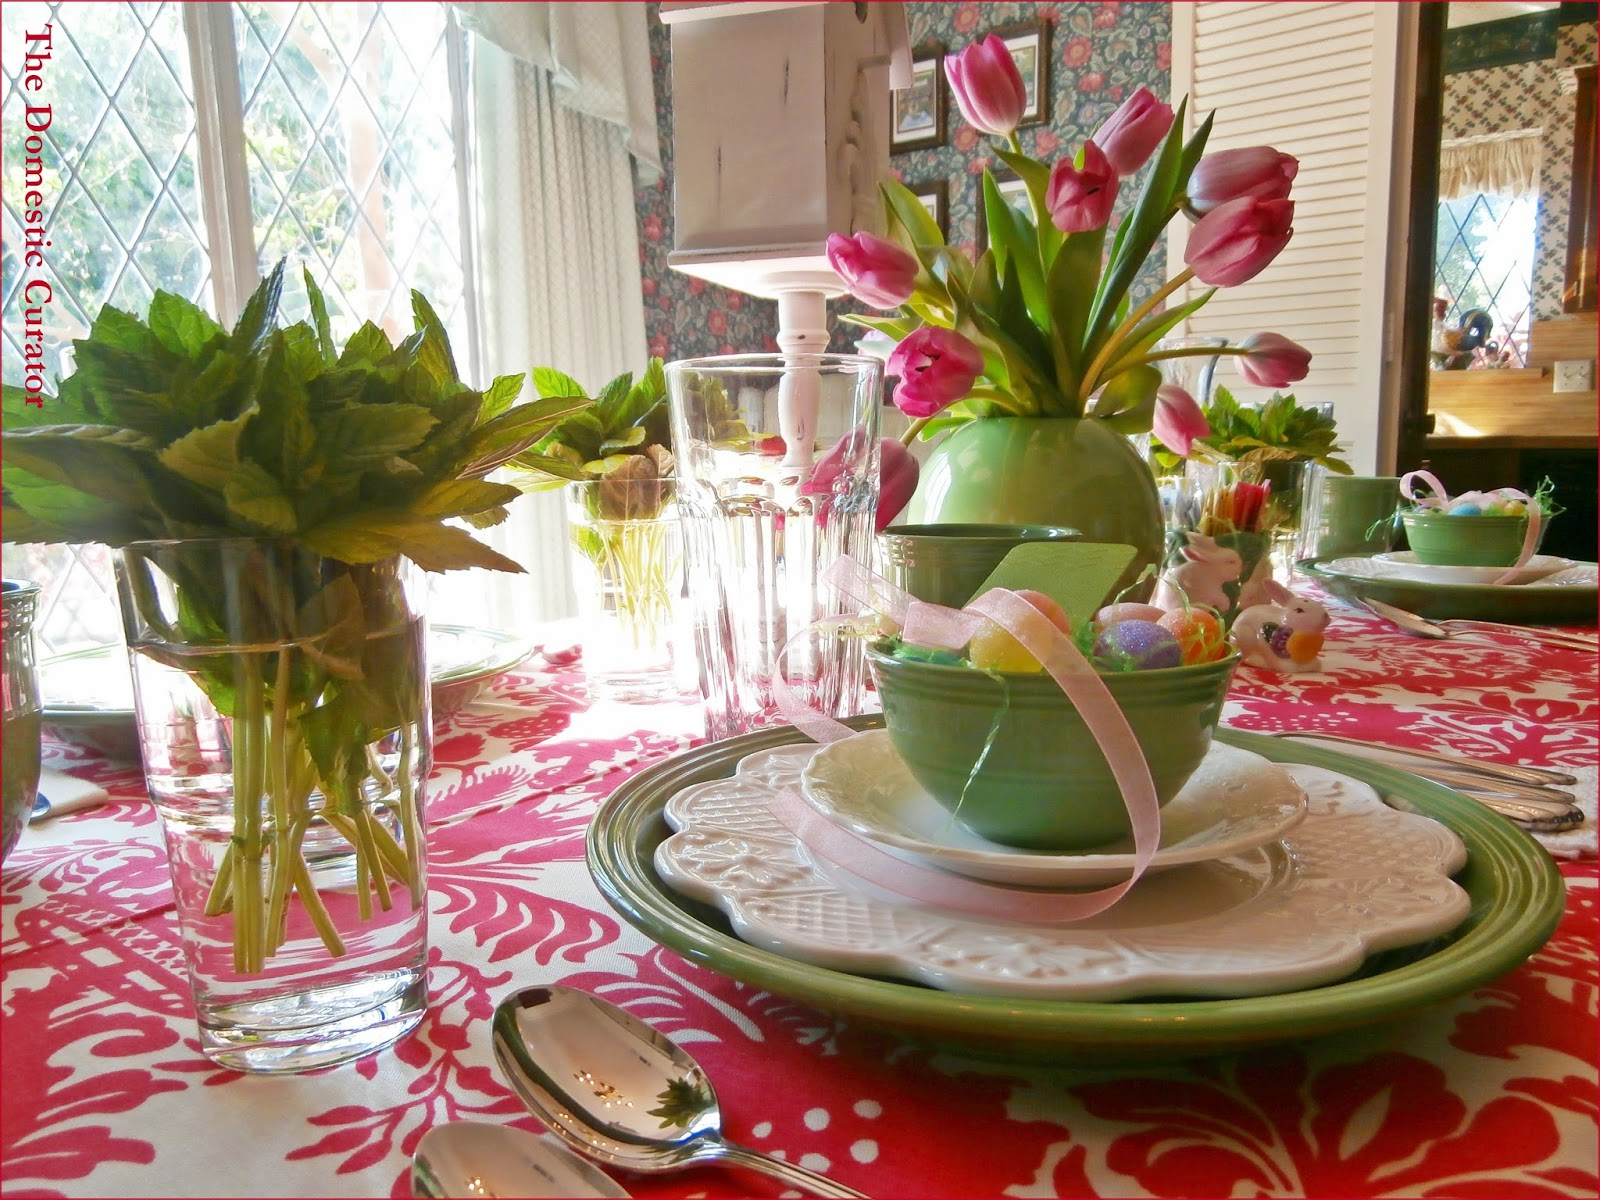 easter decorating ideas table setting - castrophotos